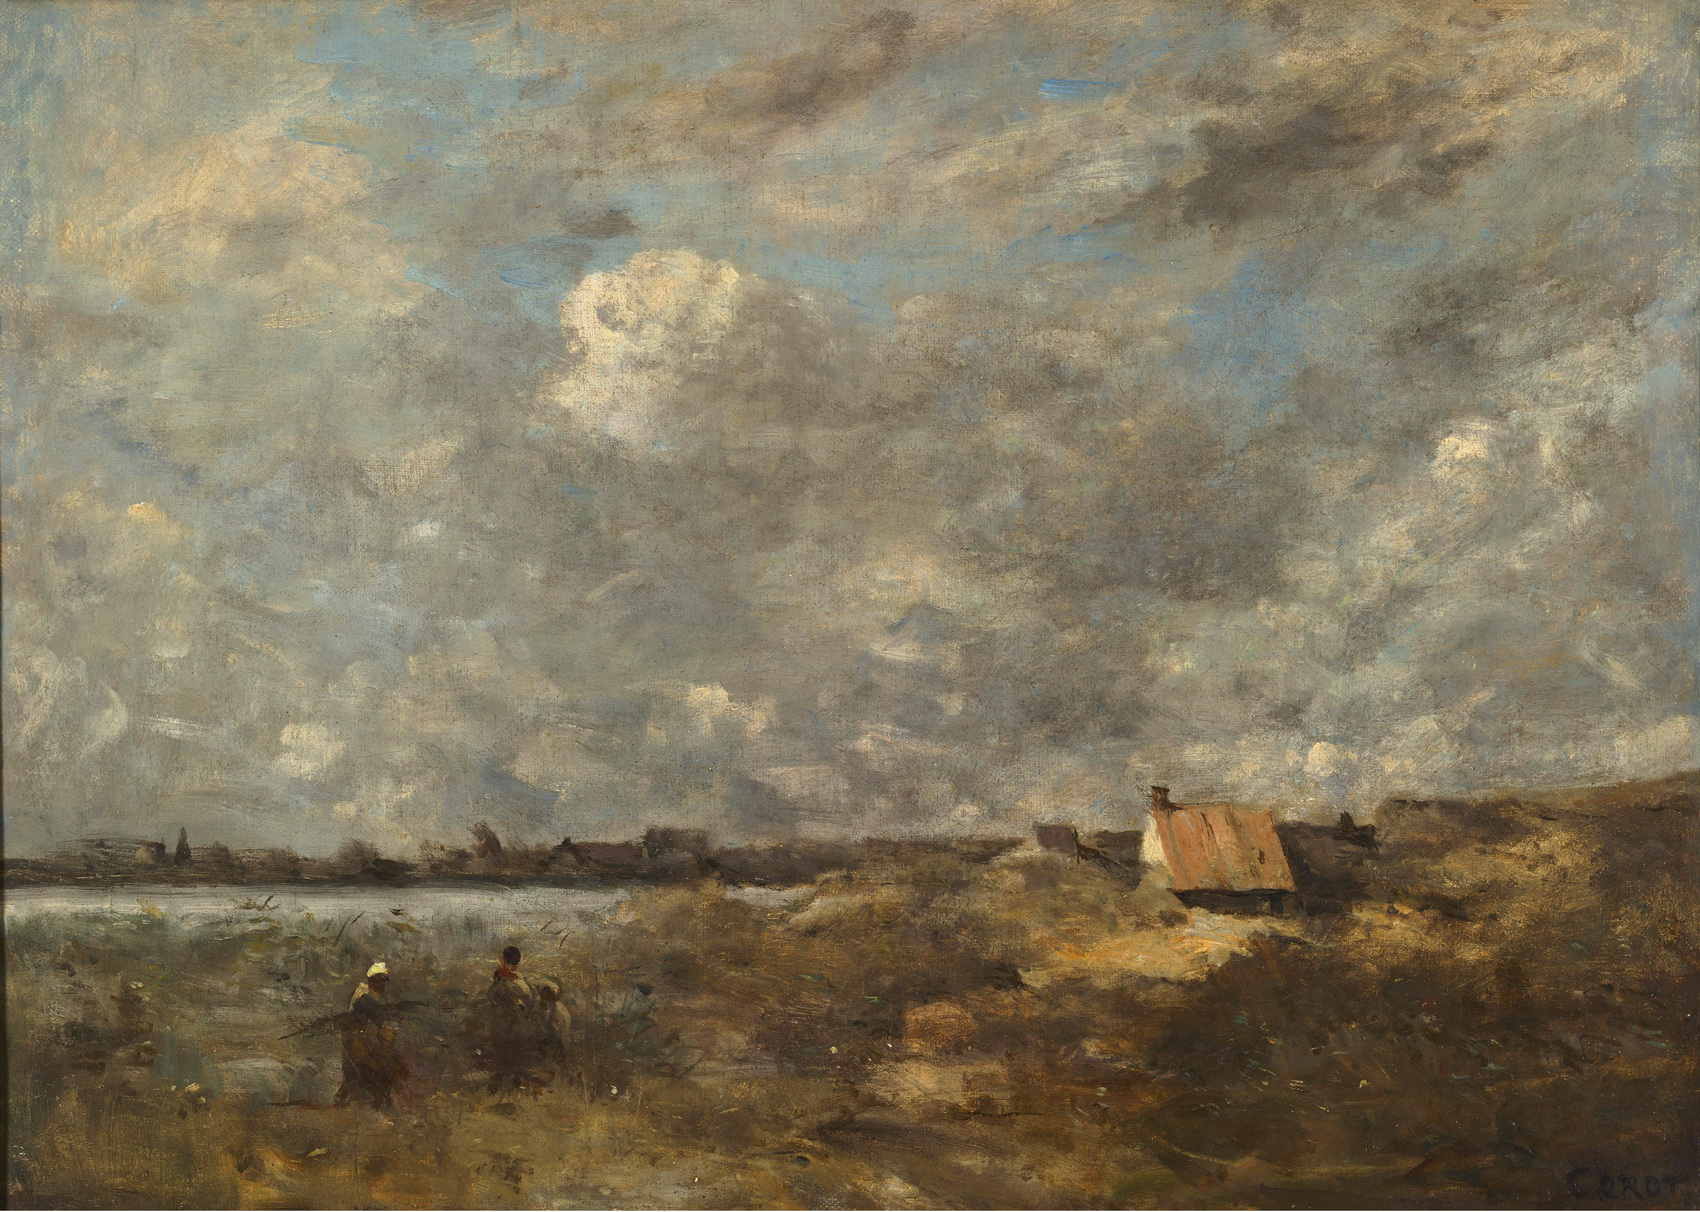 Jean-Baptiste-Camille Corot 046-stormy weather-1700